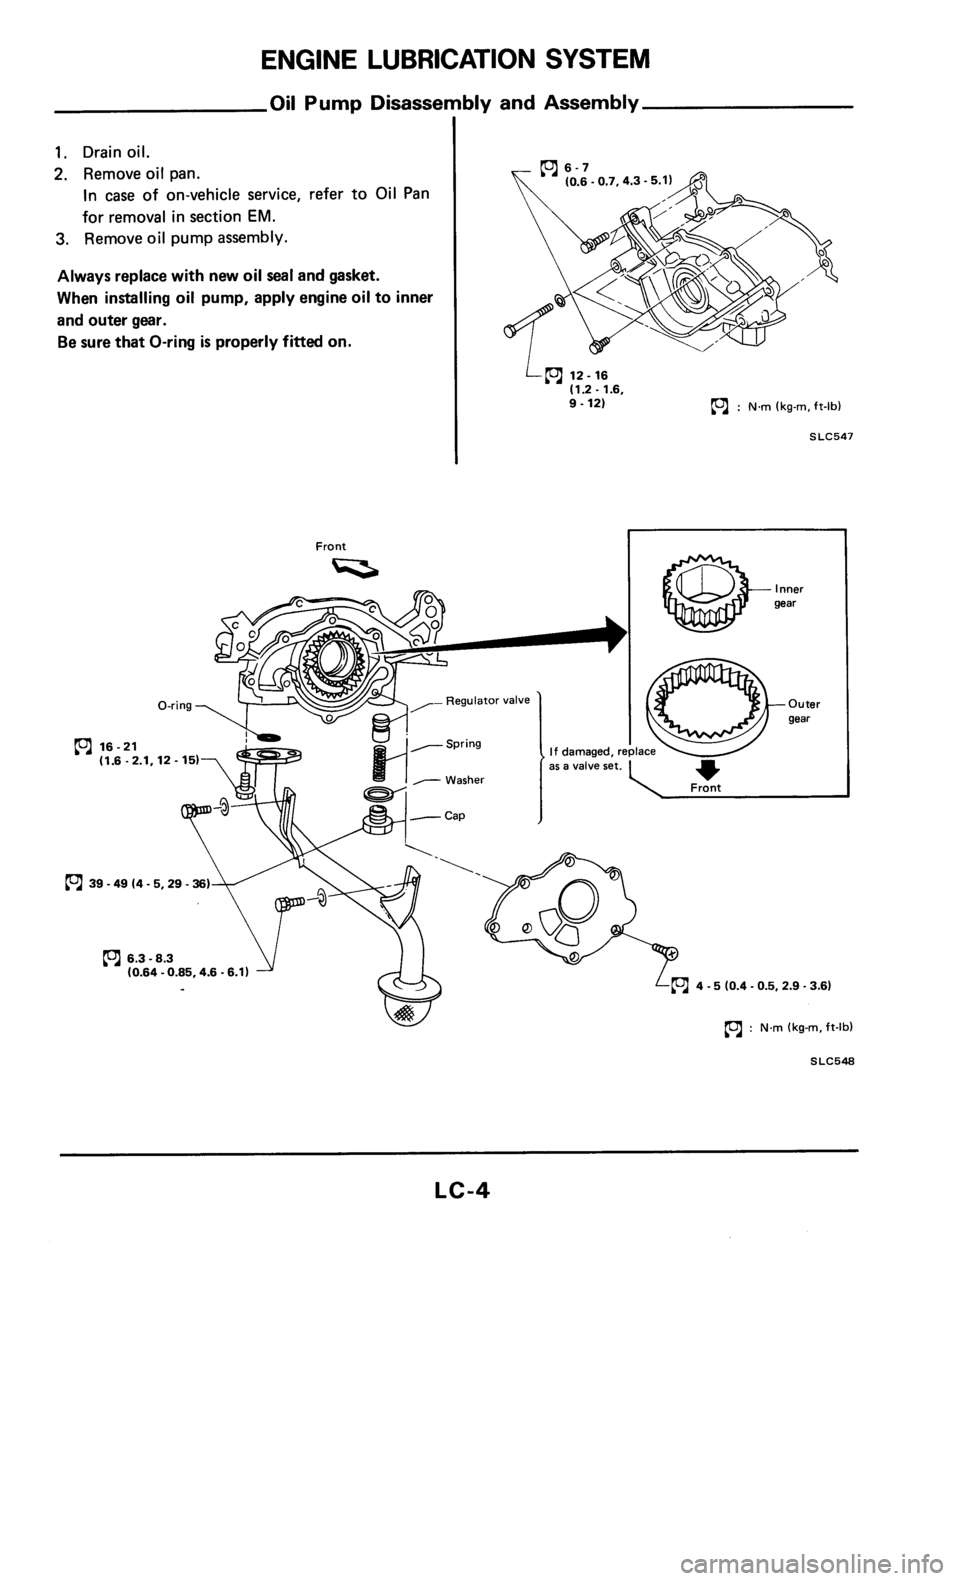 NISSAN 300ZX 1985 Z31 Engine Lubrication And Cooling System Workshop Manual, Page 4